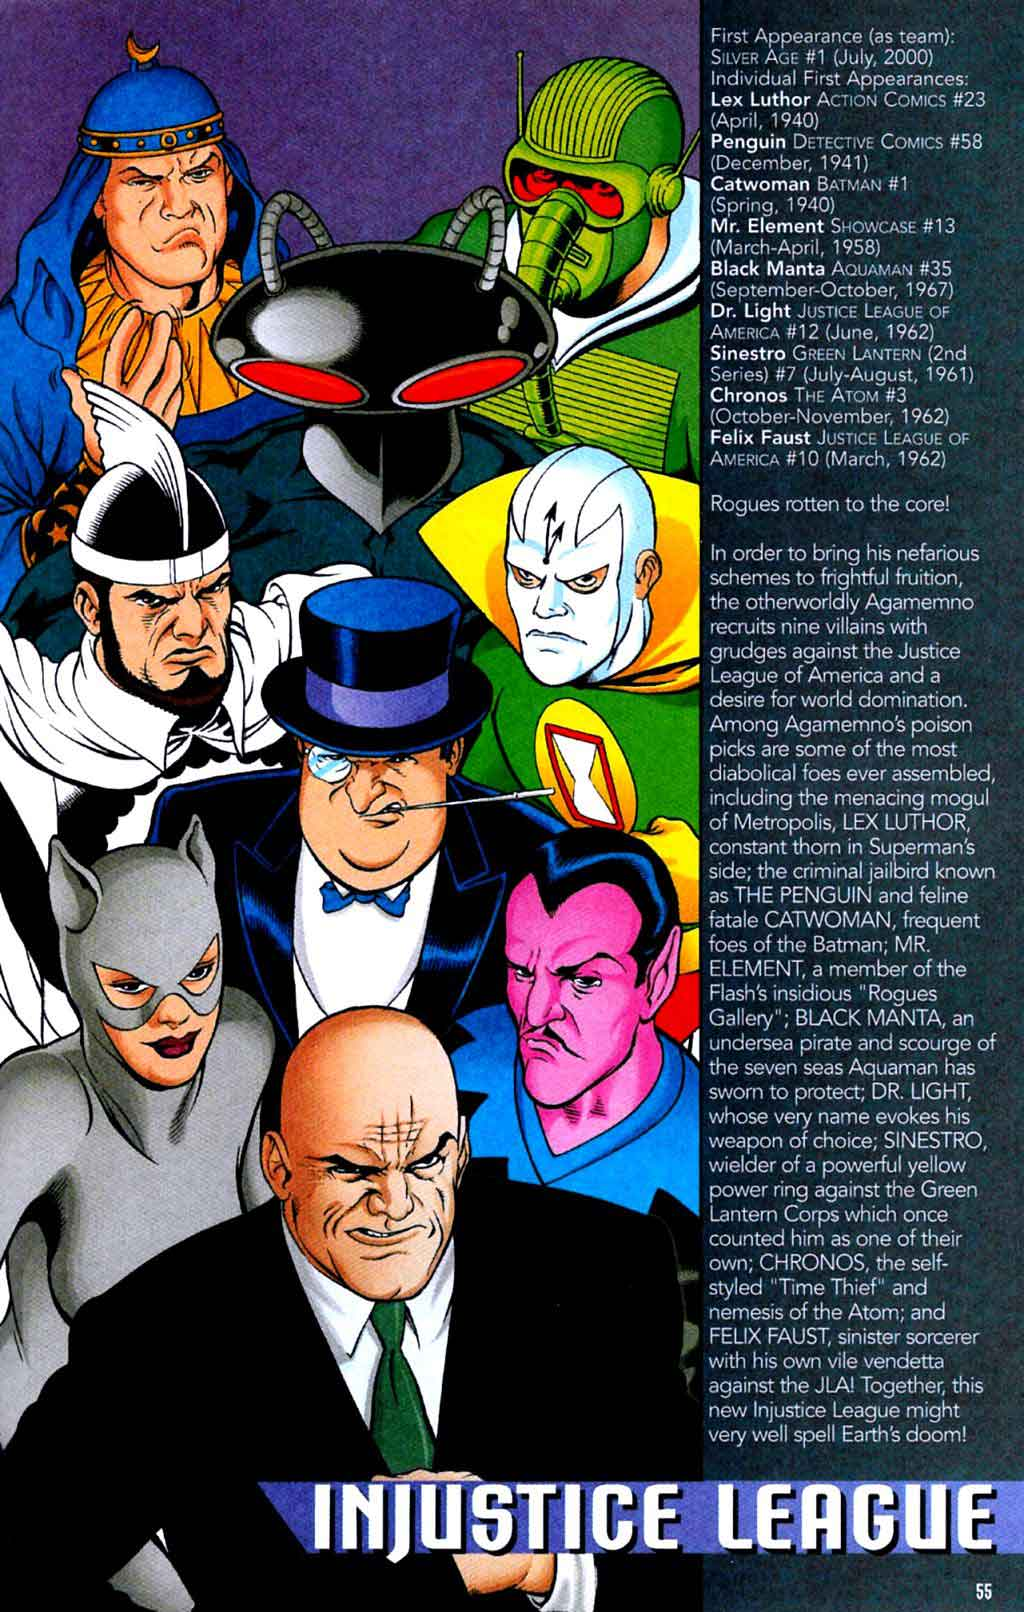 Injustice League by Scott Beatty, Kevin Maguire & Randy Elliott